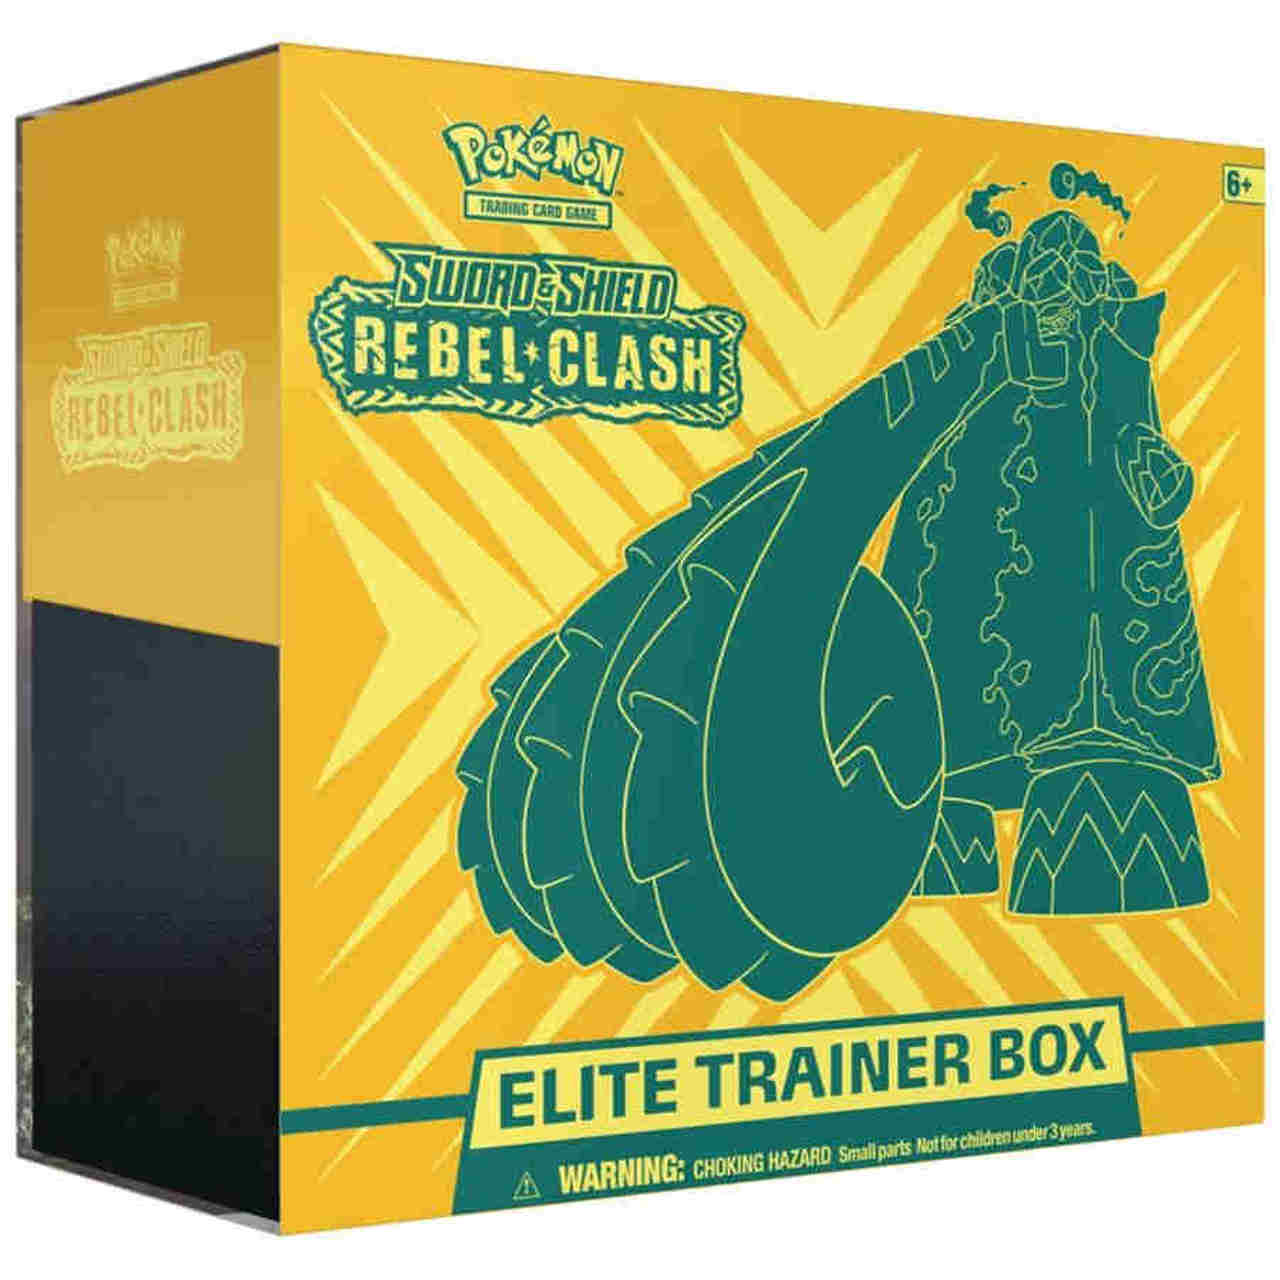 Pokemon Sword & Shield Rebel Clash Elite Trainer | All About Games